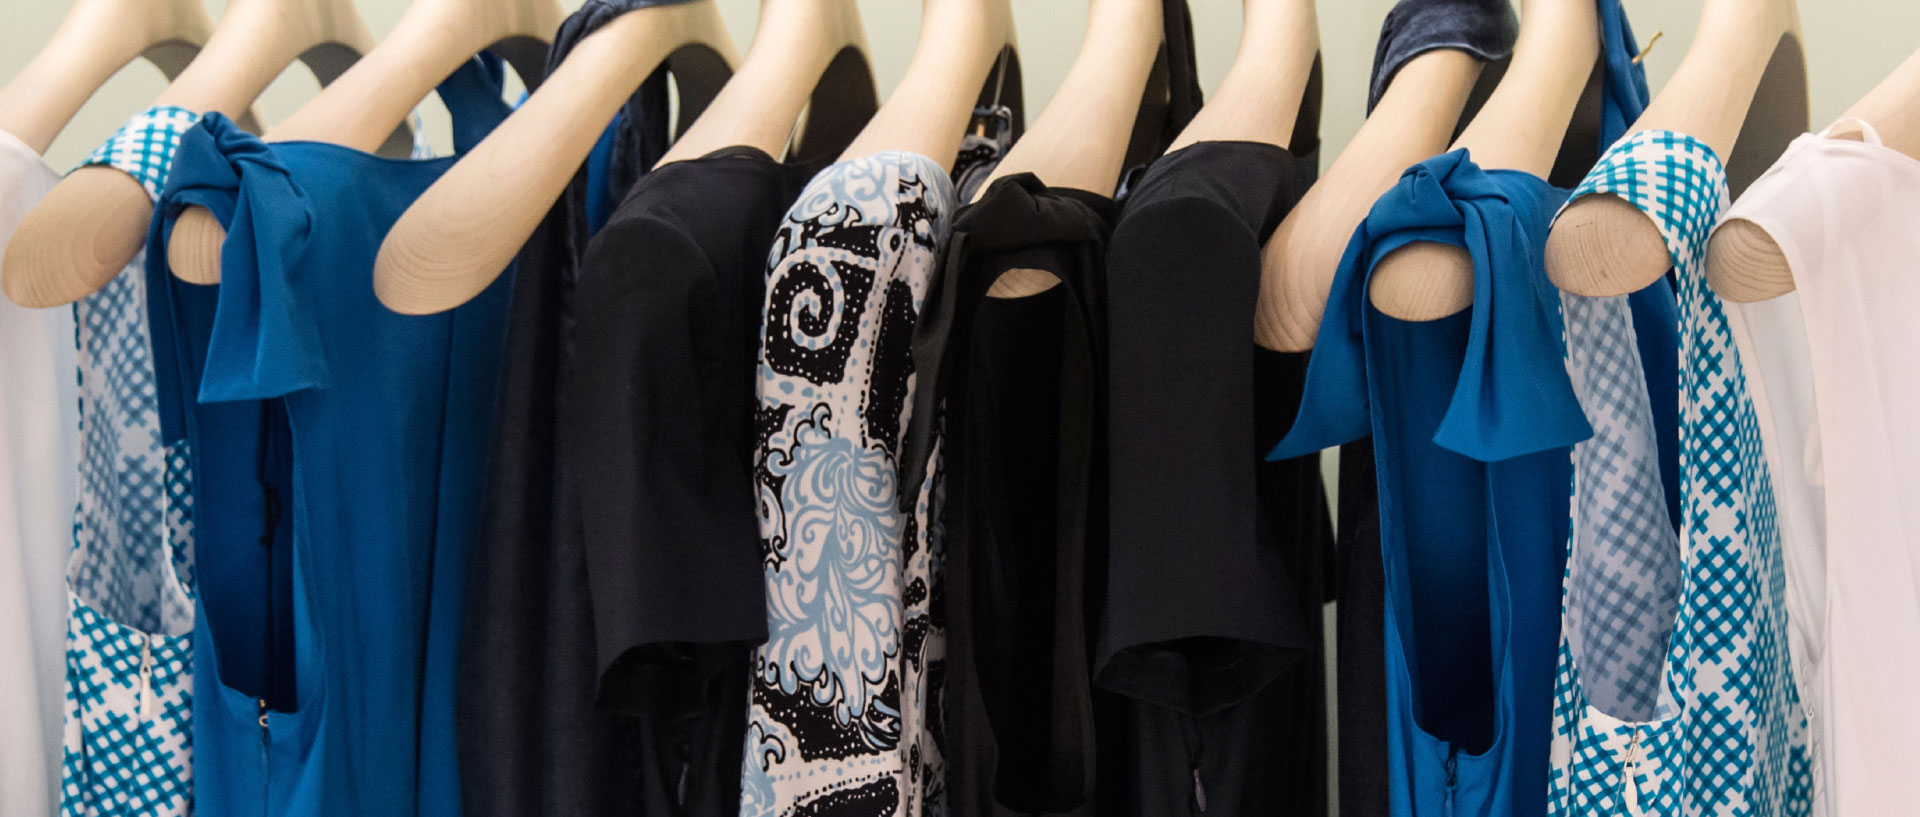 Steamers Can Save A Trip To The Cleaners Consumer Reports